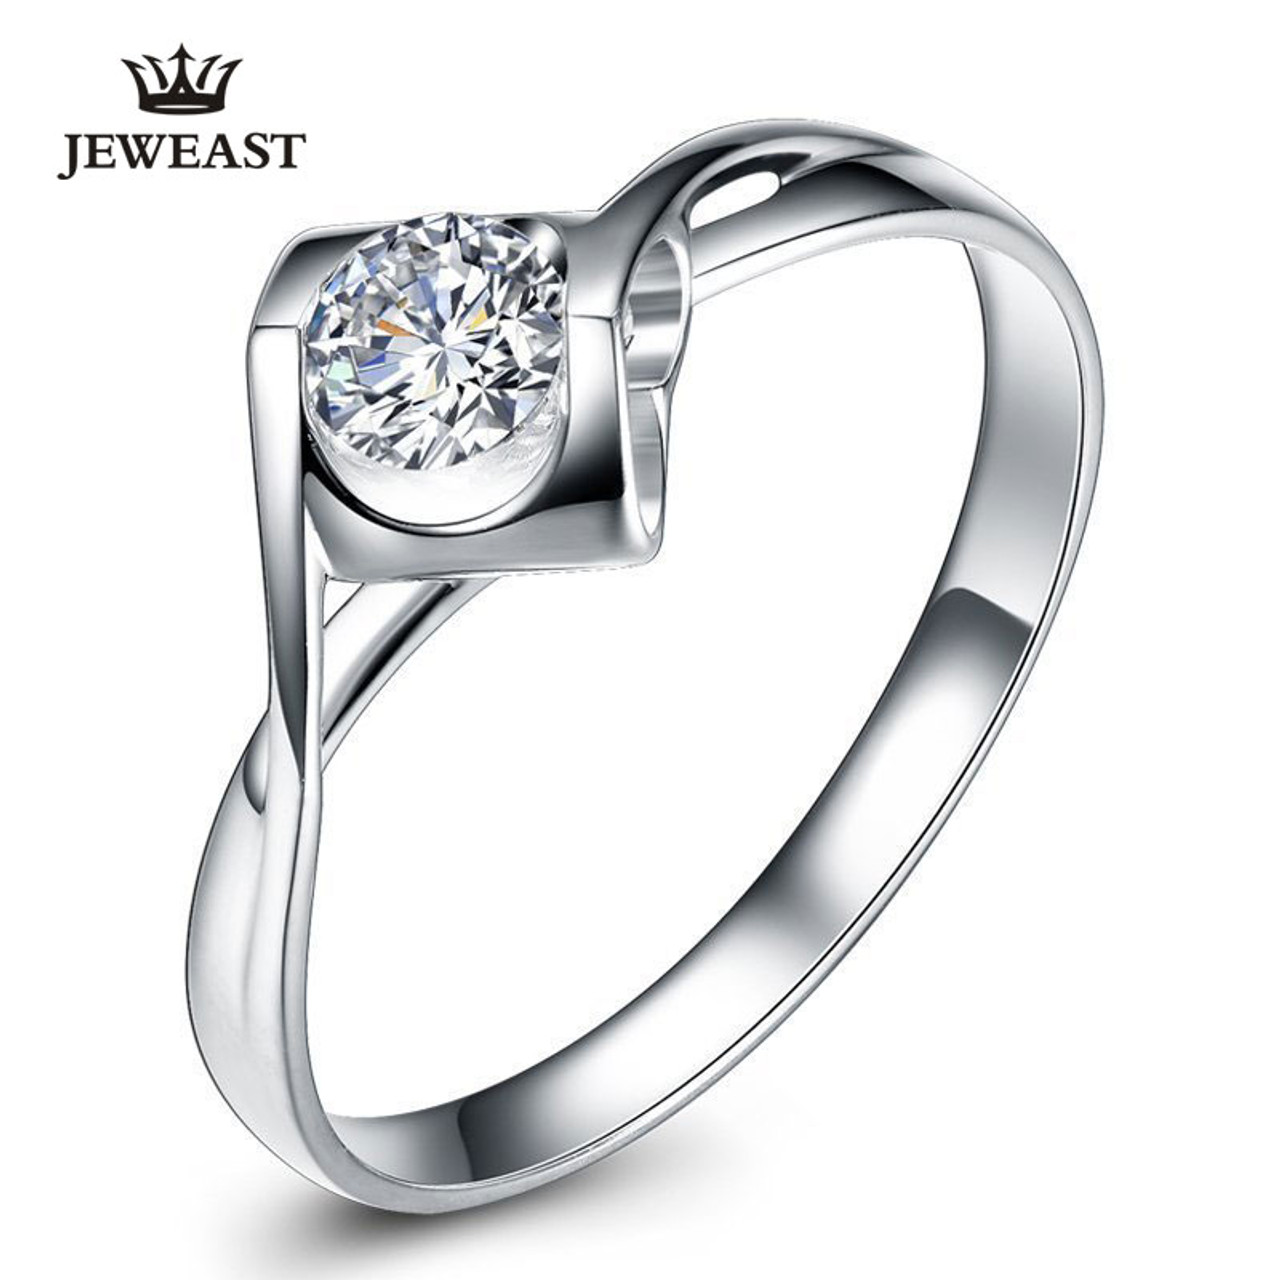 873667d8d0 Natural diamond Ring 18k Gold Women Lover Couple Anniversary Romantic  Propose Engaged Wedding Party South African ...